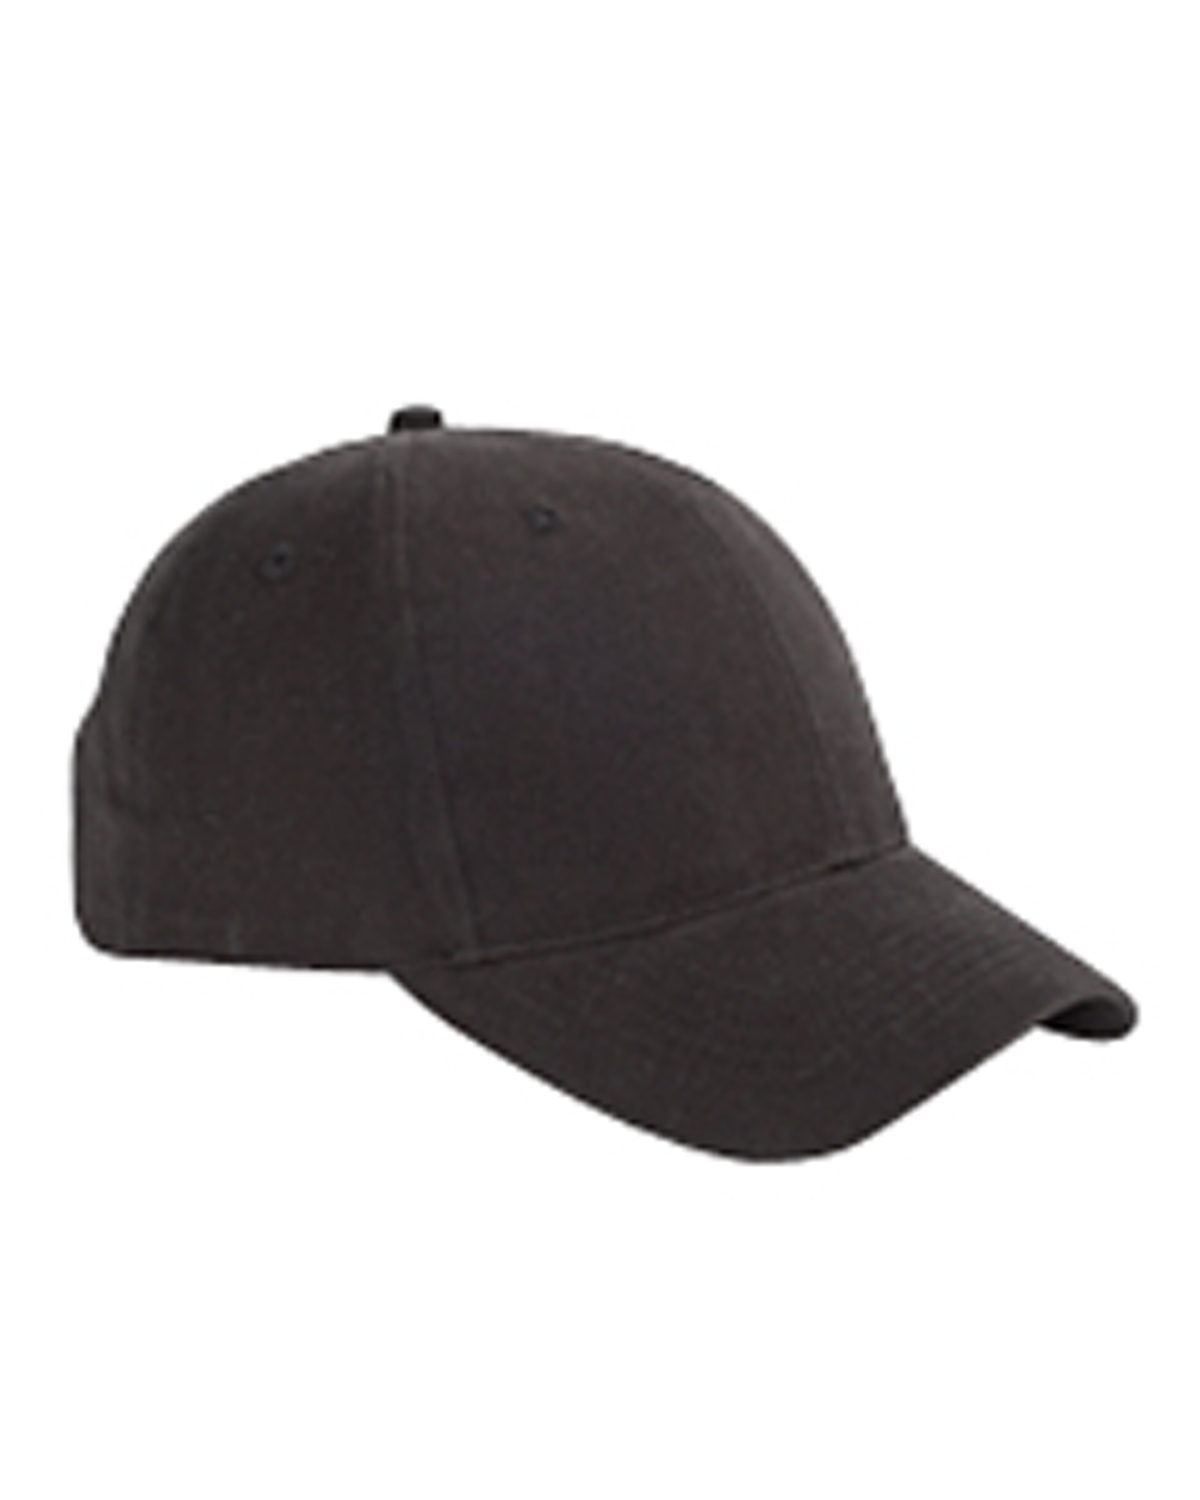 Big Accessories BX002 6-Panel Brushed Twill Structured Cap